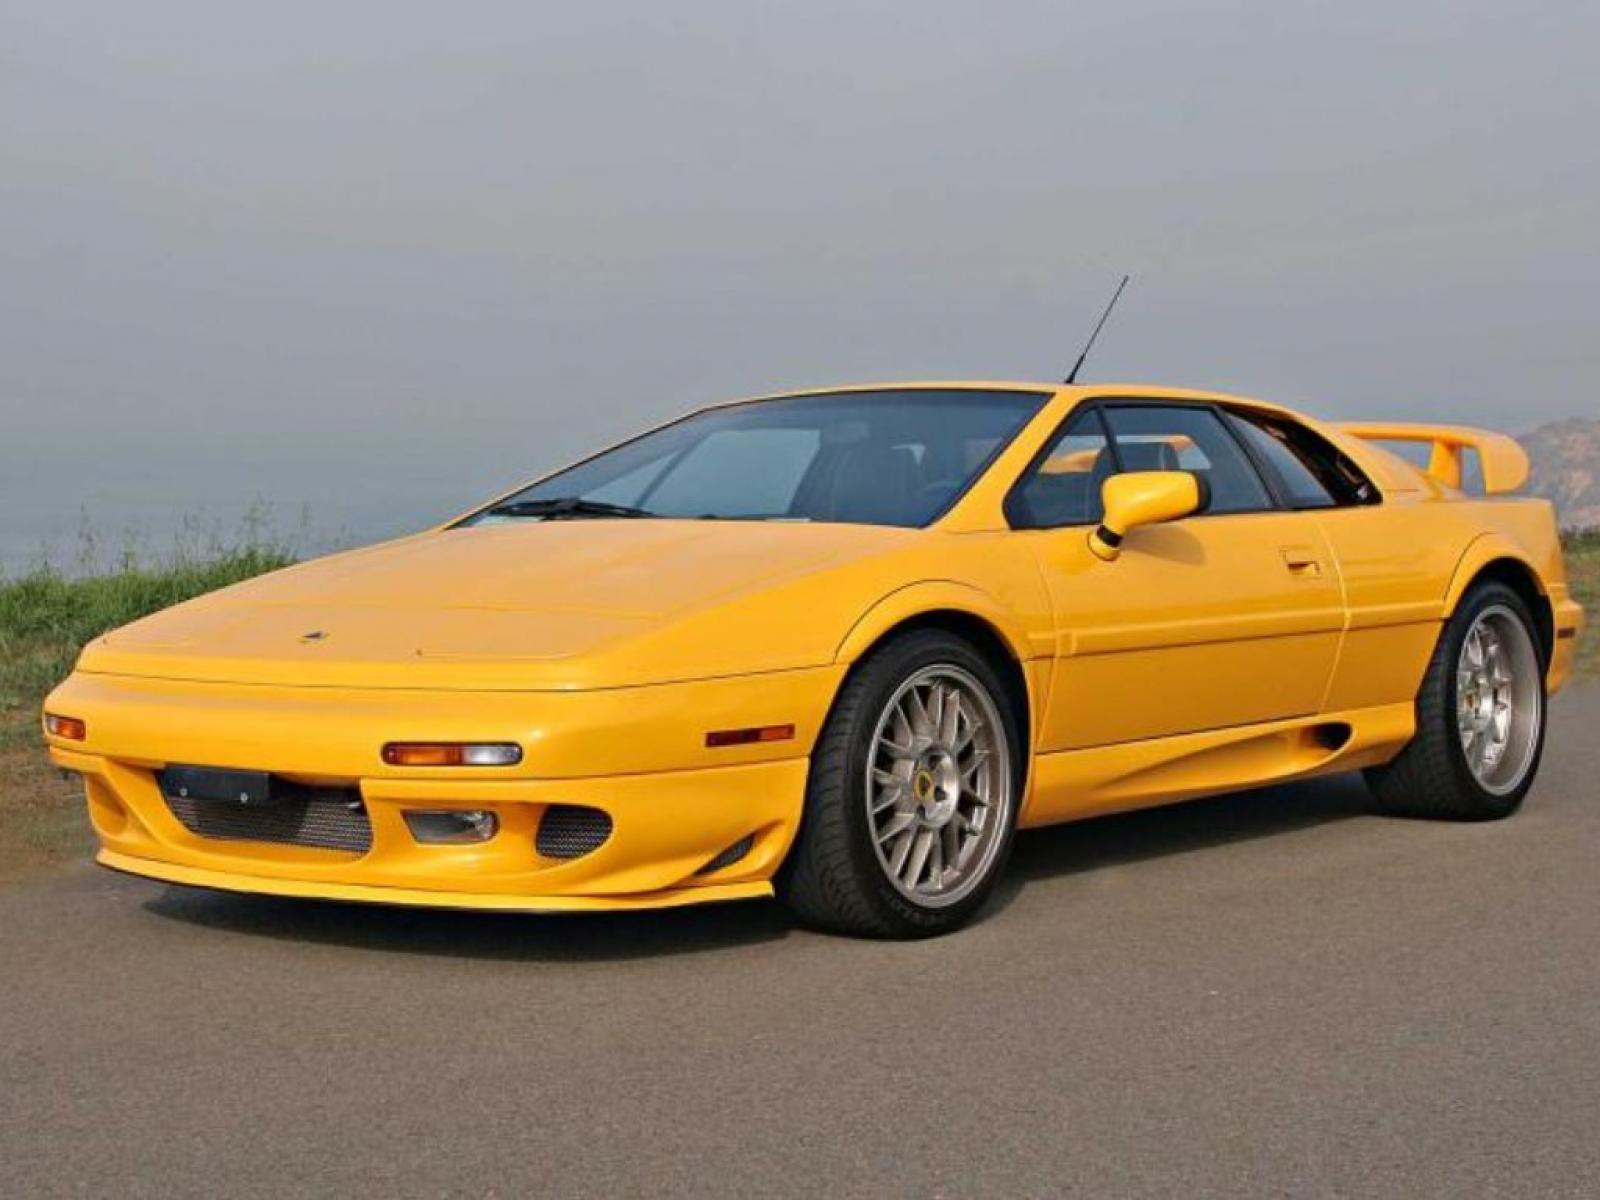 2002 lotus esprit information and photos zombiedrive. Black Bedroom Furniture Sets. Home Design Ideas